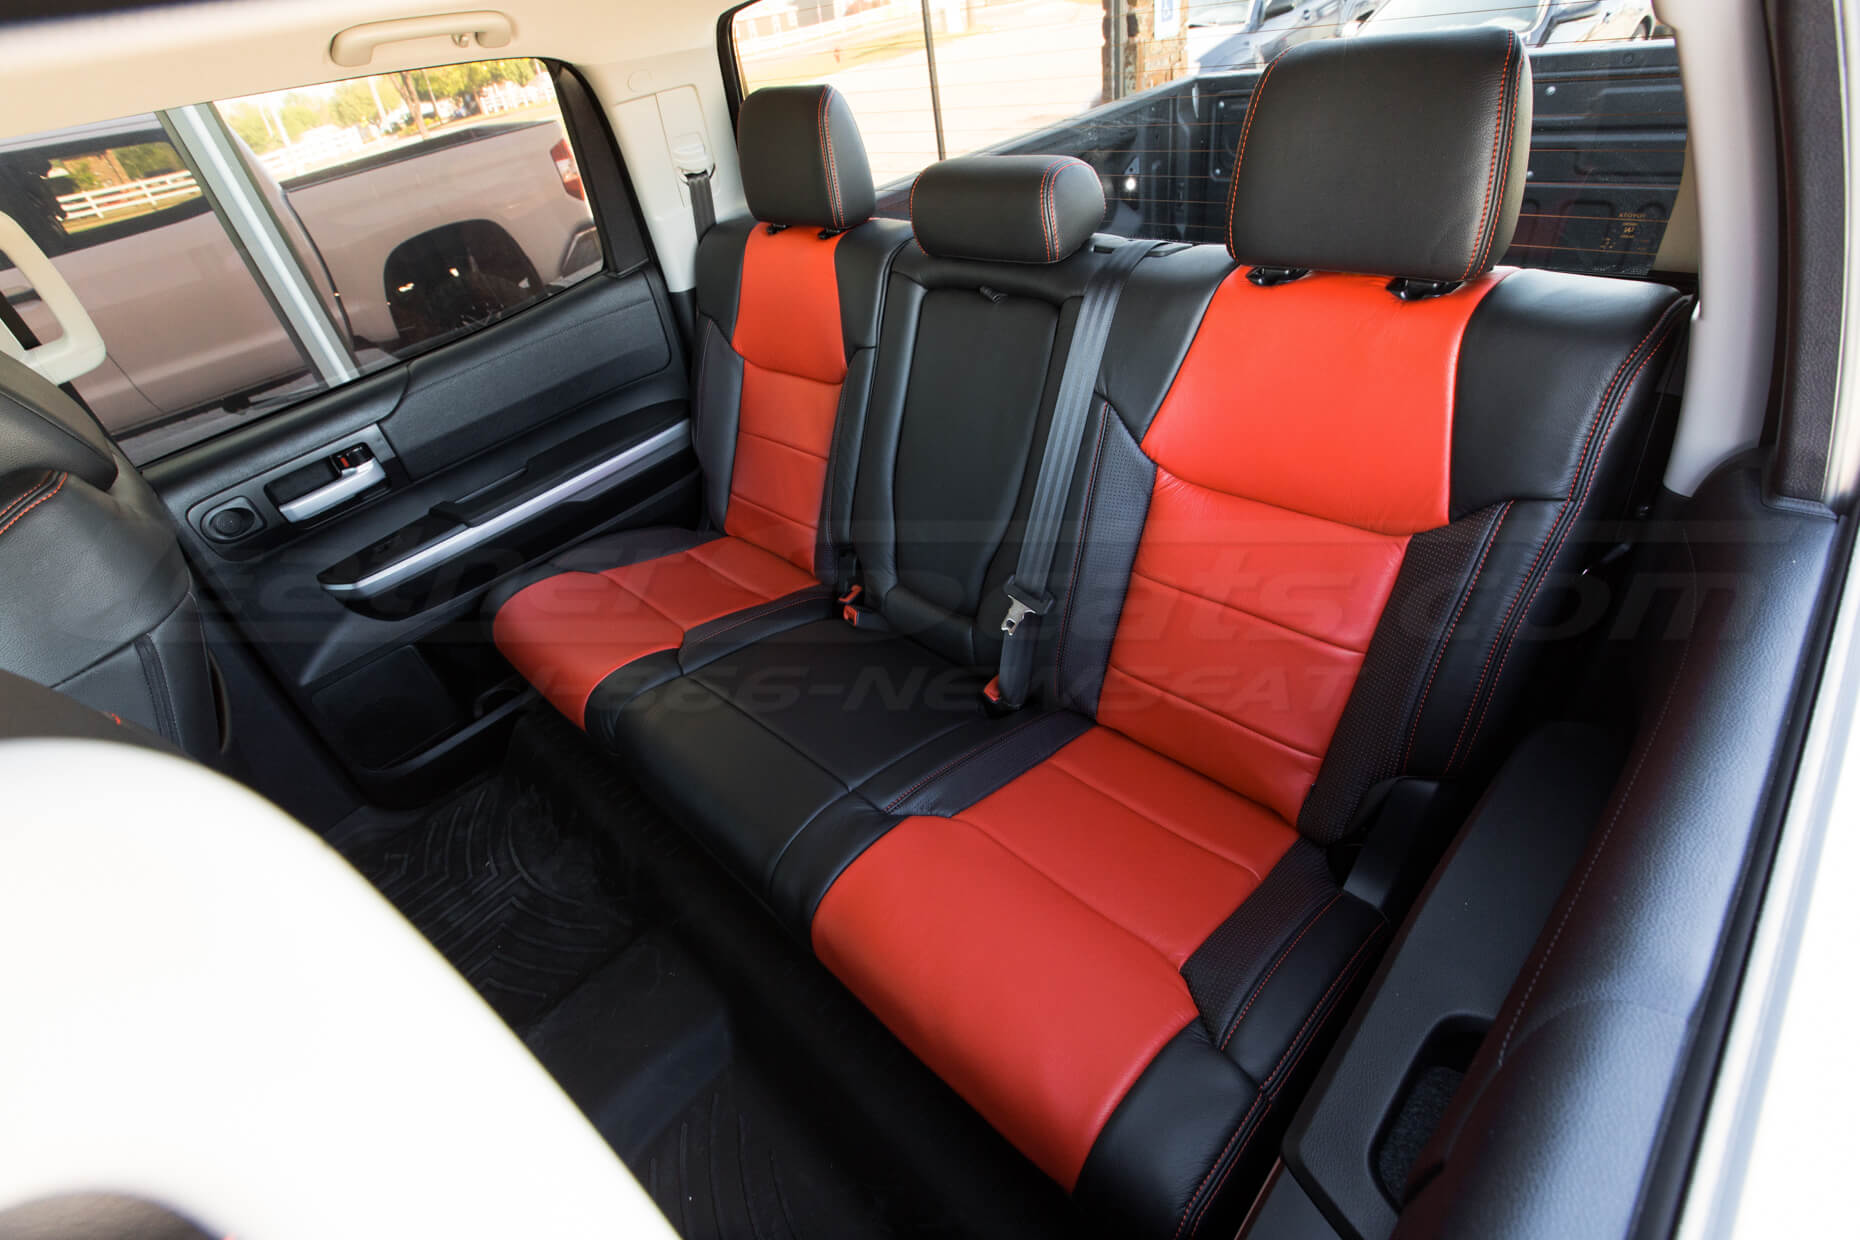 Toyota Tundra installed kit - Black, Bright Red, Piazza red - Rear seats